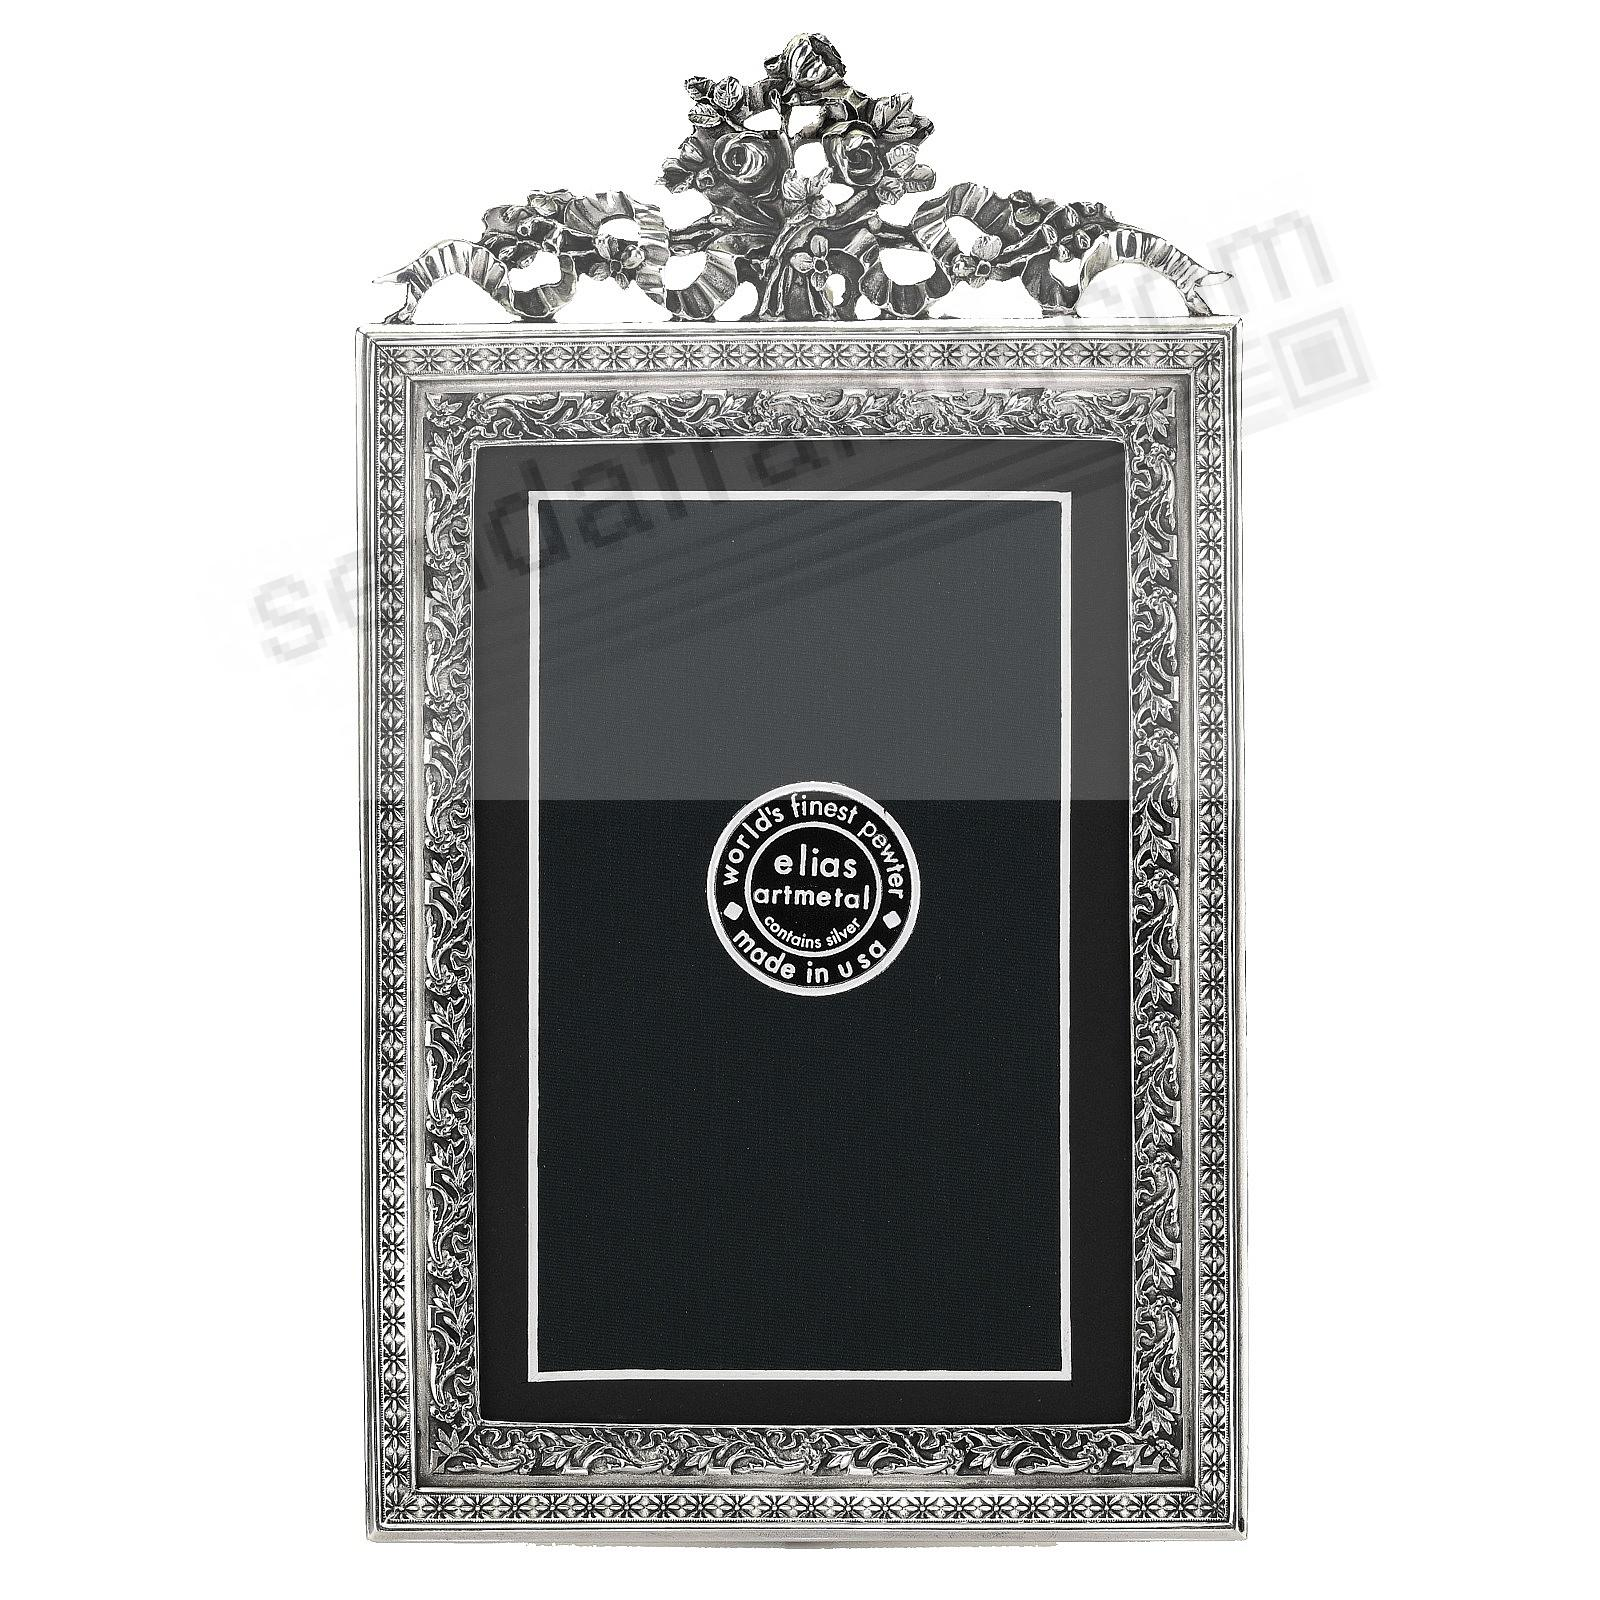 VIENNA STAR luxe Fine Pewter 4x6/3x5 frame<br>by Elias Artmetal®